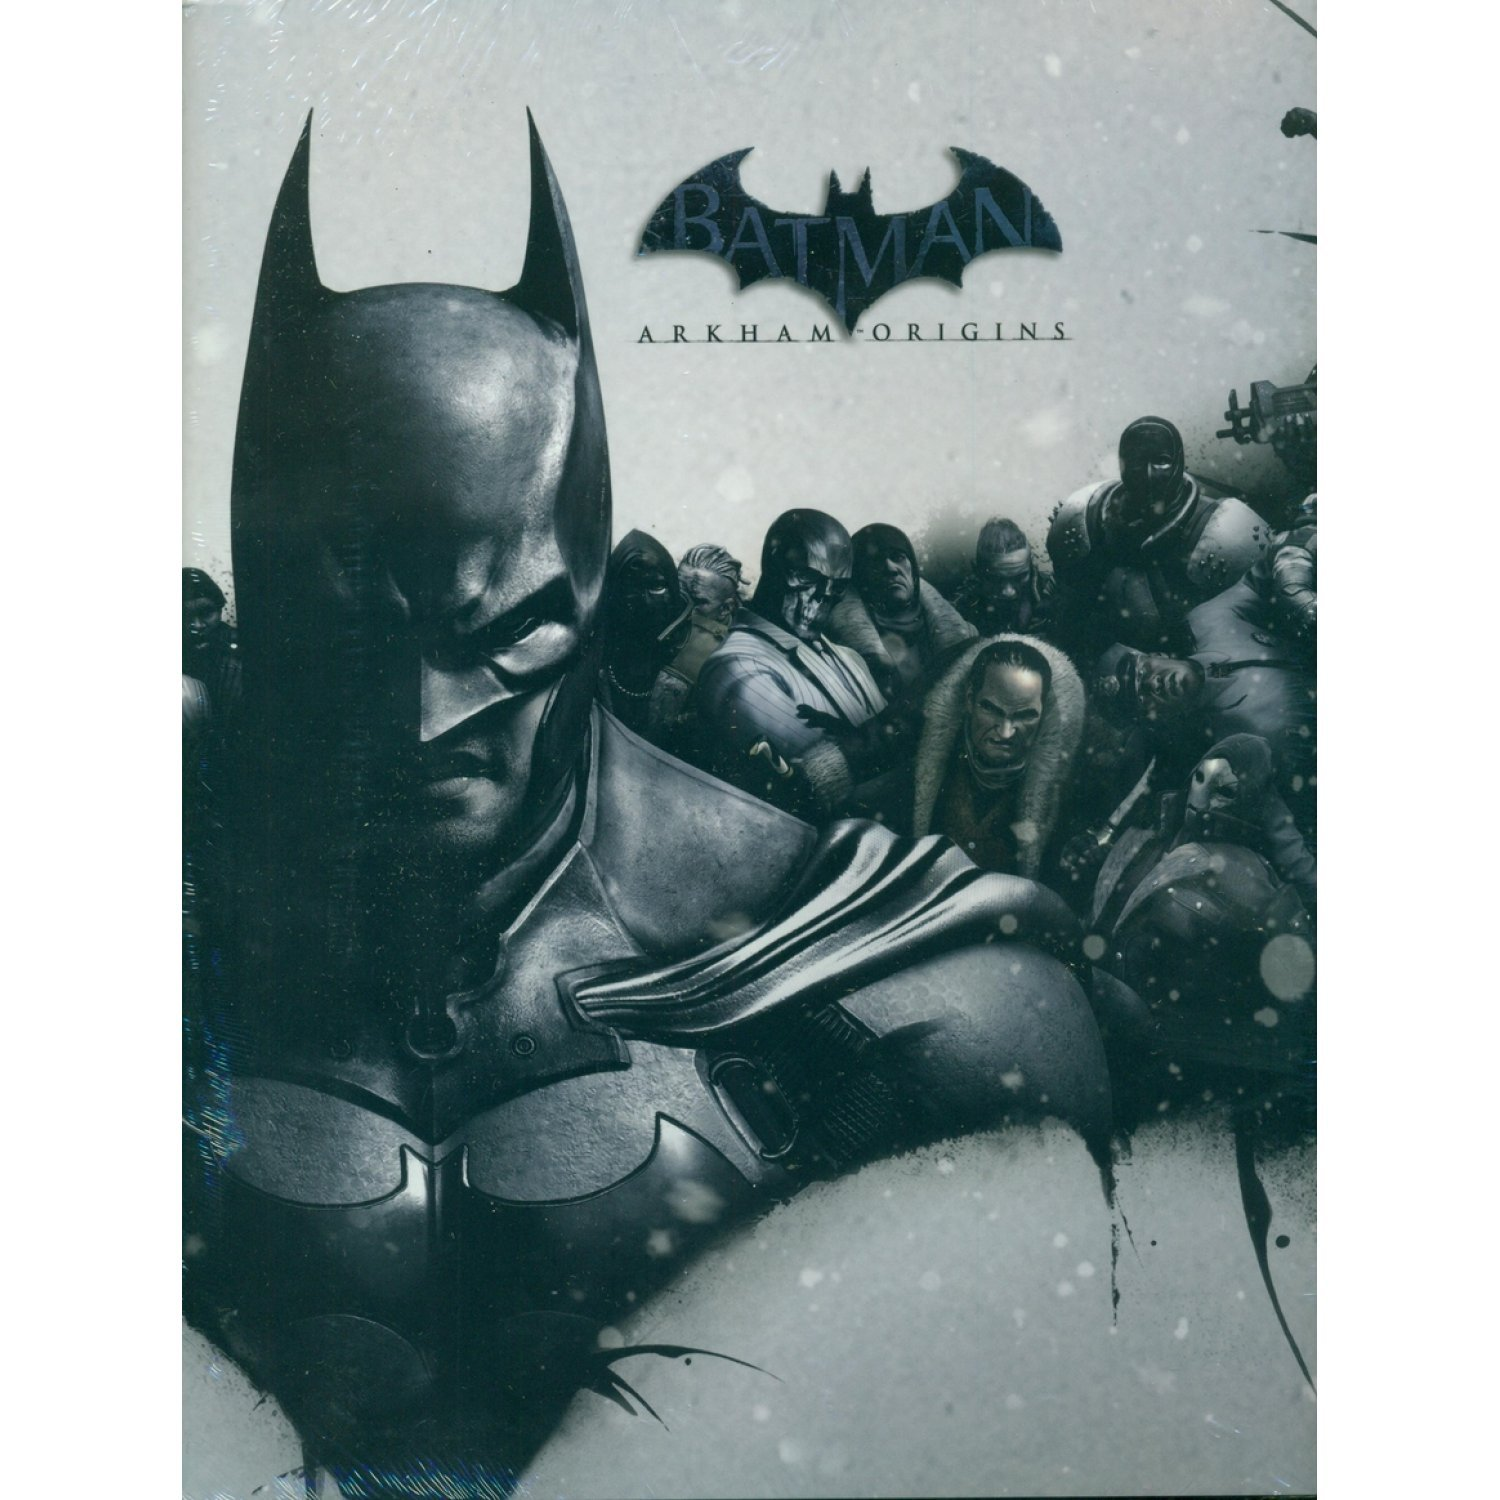 batman arkham origins limited edition strategy guide rh play asia com Batman Arkham Knight Wallpaper Batman Arkham Knight Wallpaper